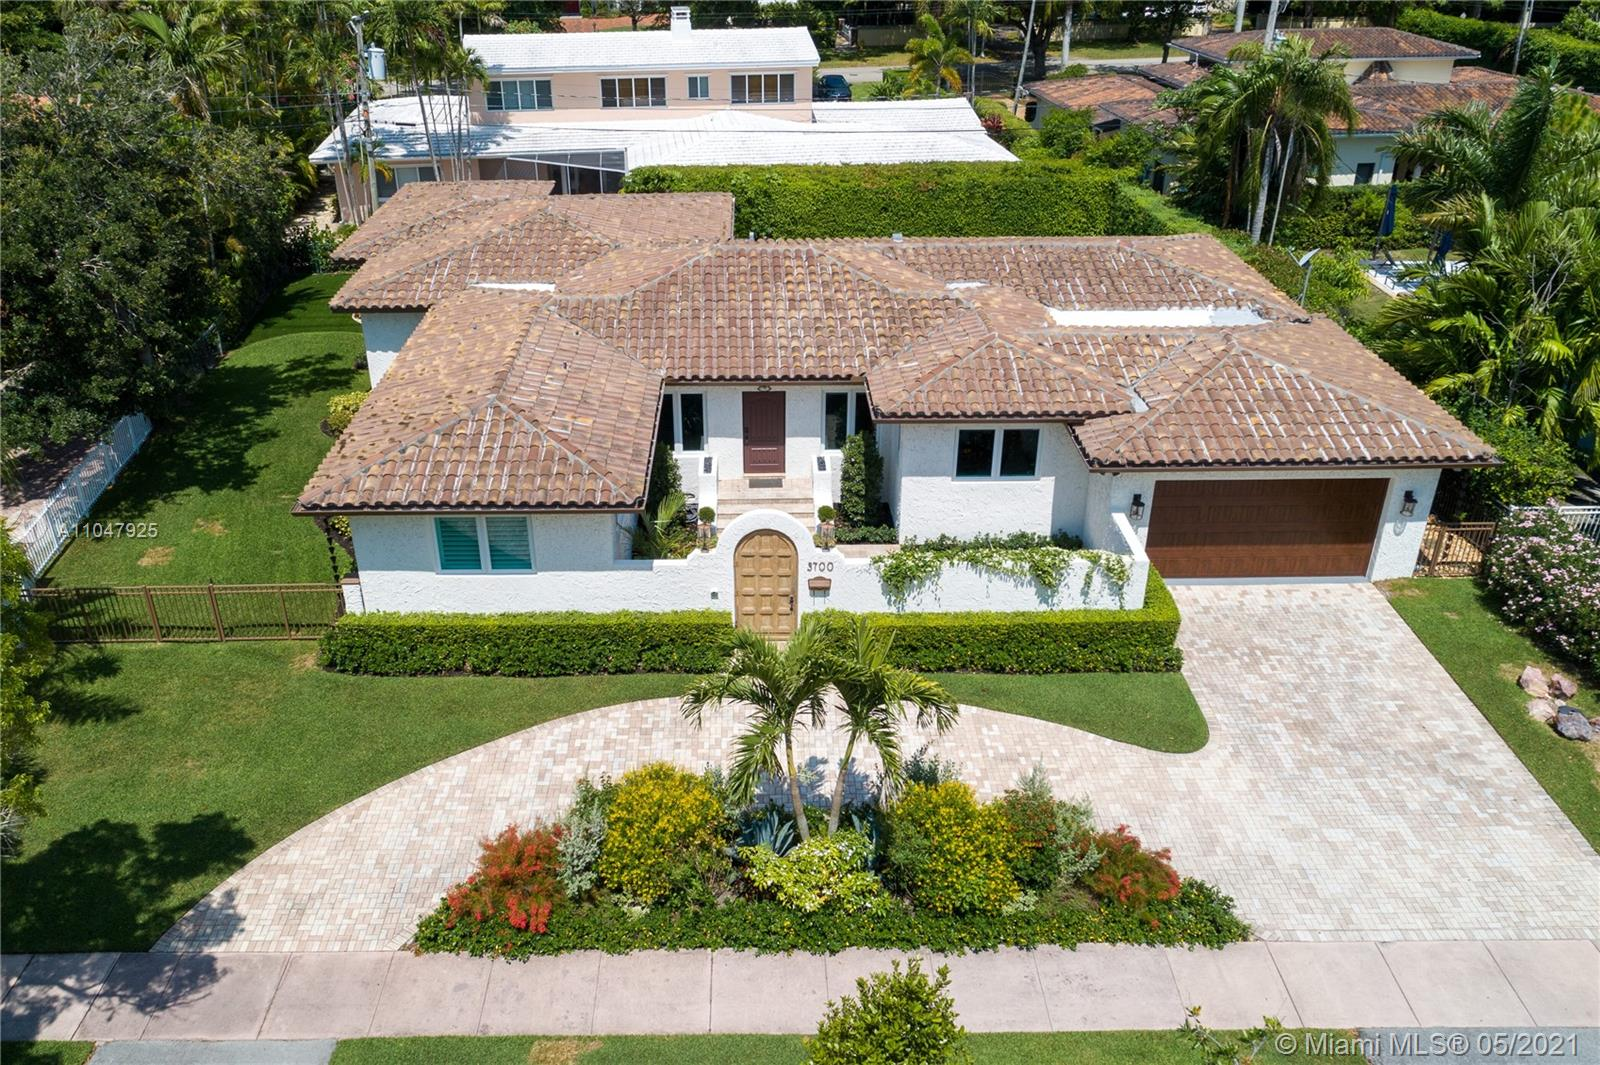 Sophisticated and charming, single-story, 4 bdrm/3 bath home within the Golden Triangle of Coral Gables. Extensively updated with 3000 adj. sq. ft., on a 10,900 ft. lot features a beautiful courtyard entry, impact doors/windows. There is a new 2020 gourmet, eat-in kitchen with top-of-the-line appliances, and a sunny breakfast area. Formal living and dining rooms plus a cozy Family room. To the left of the living room are all the bedrooms. The spacious master has walk-in closets and French doors to the patio/pool that features an infinity fast-lane resistance machine. The pool can be seen through French doors from many rooms in the house. The 2-car garage has a Clopay door and epoxy floors. Separate laundry room with a built-in desk/office area and a Standby generator. FIRM PRICE.